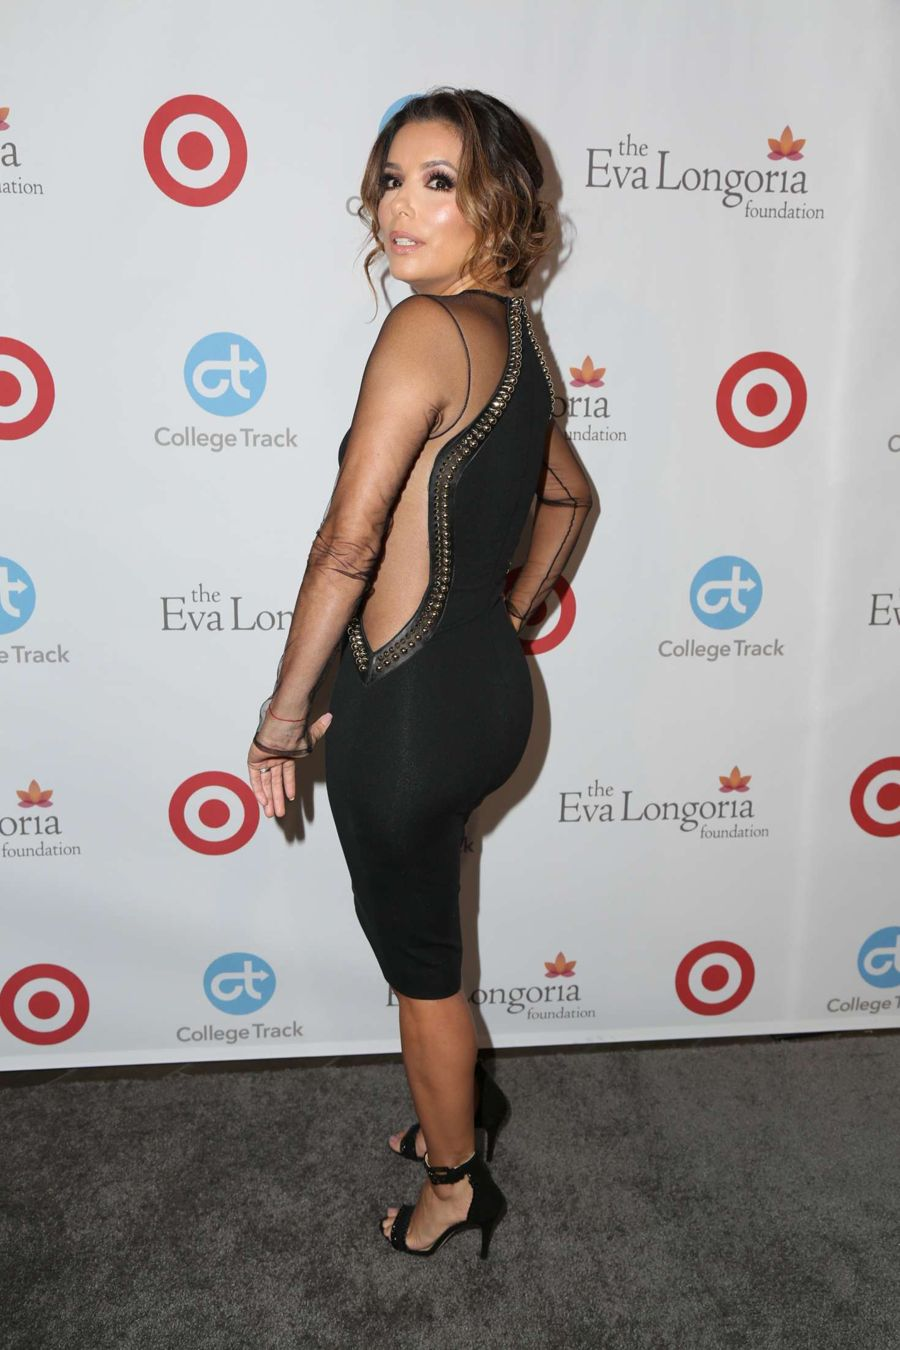 Eva Longoria - 5th Annual Eva Longoria Foundation Dinner